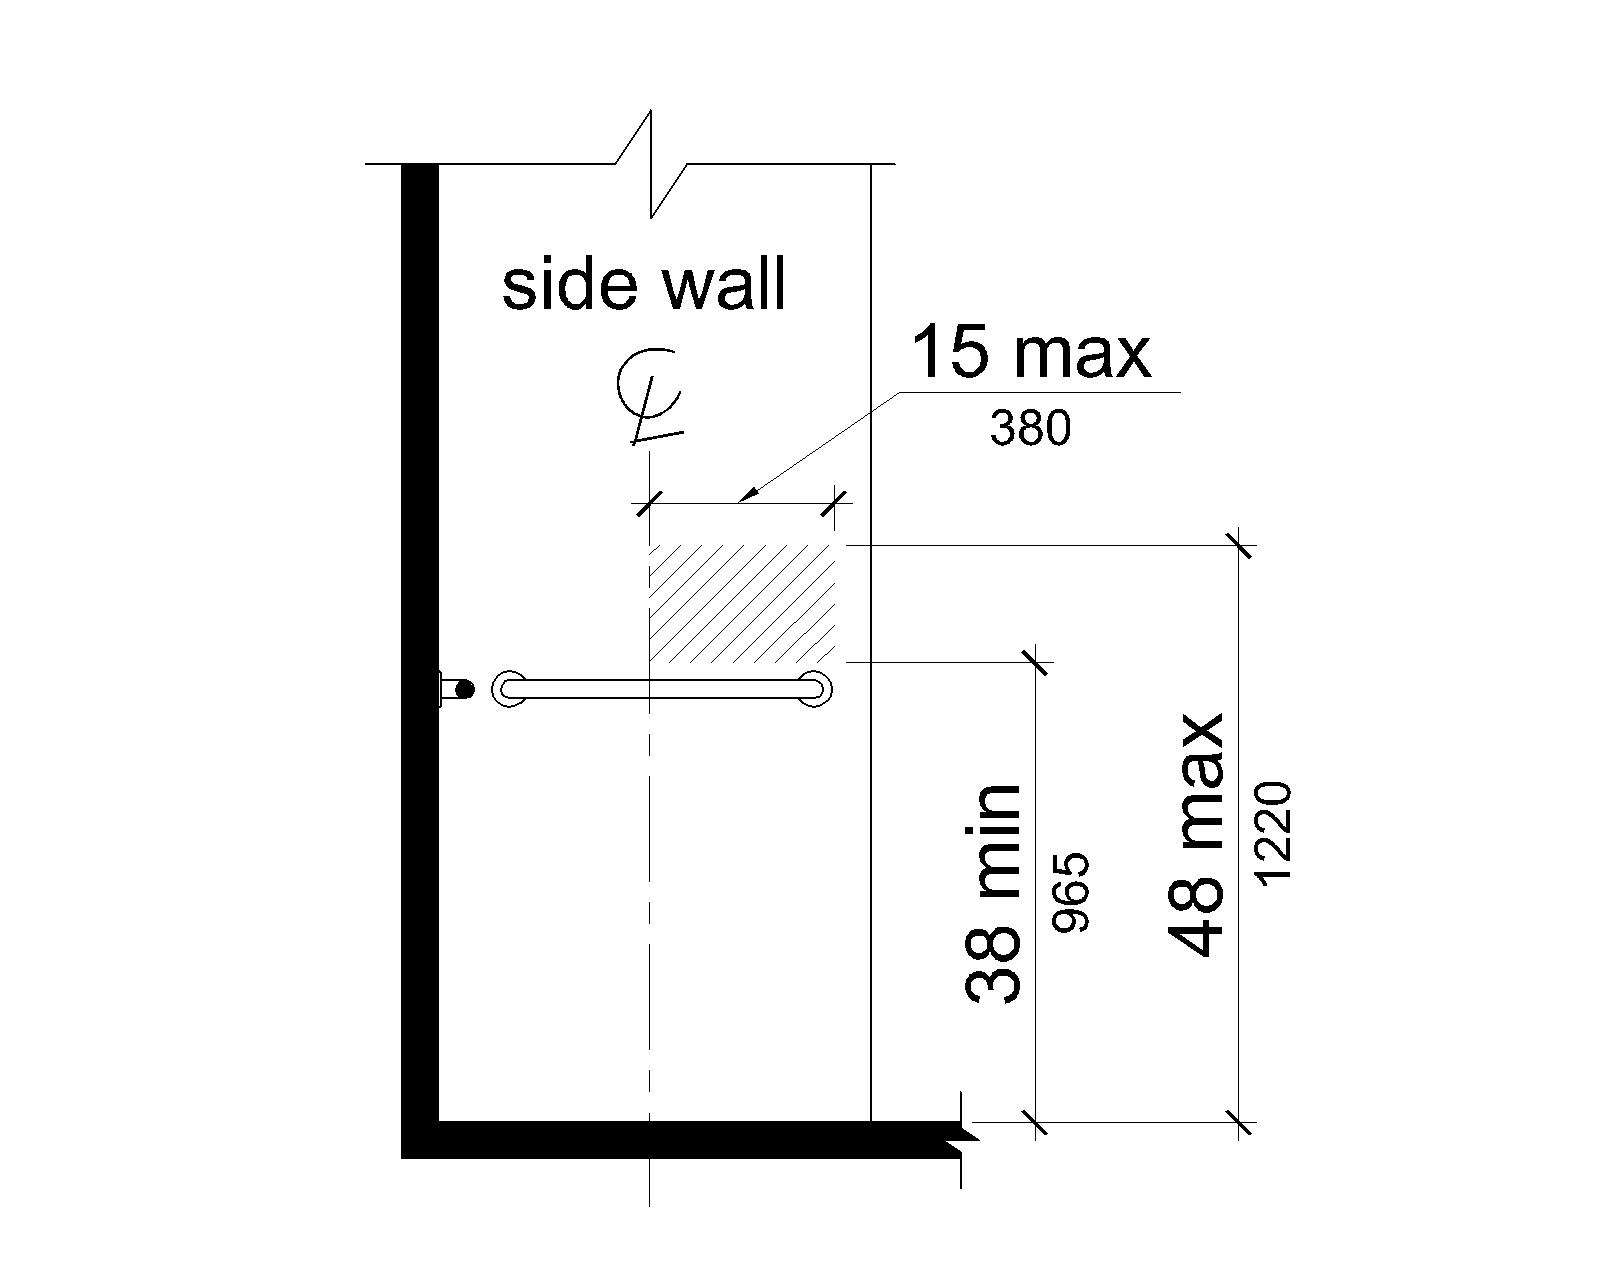 The area for controls, faucets and shower spray units is located 38 inches (965 mm) minimum to 48 inches (1220 mm) maximum above the shower deck surface on the control wall 15 inches (380 mm) maximum from the centerline of the seat, toward the shower opening.